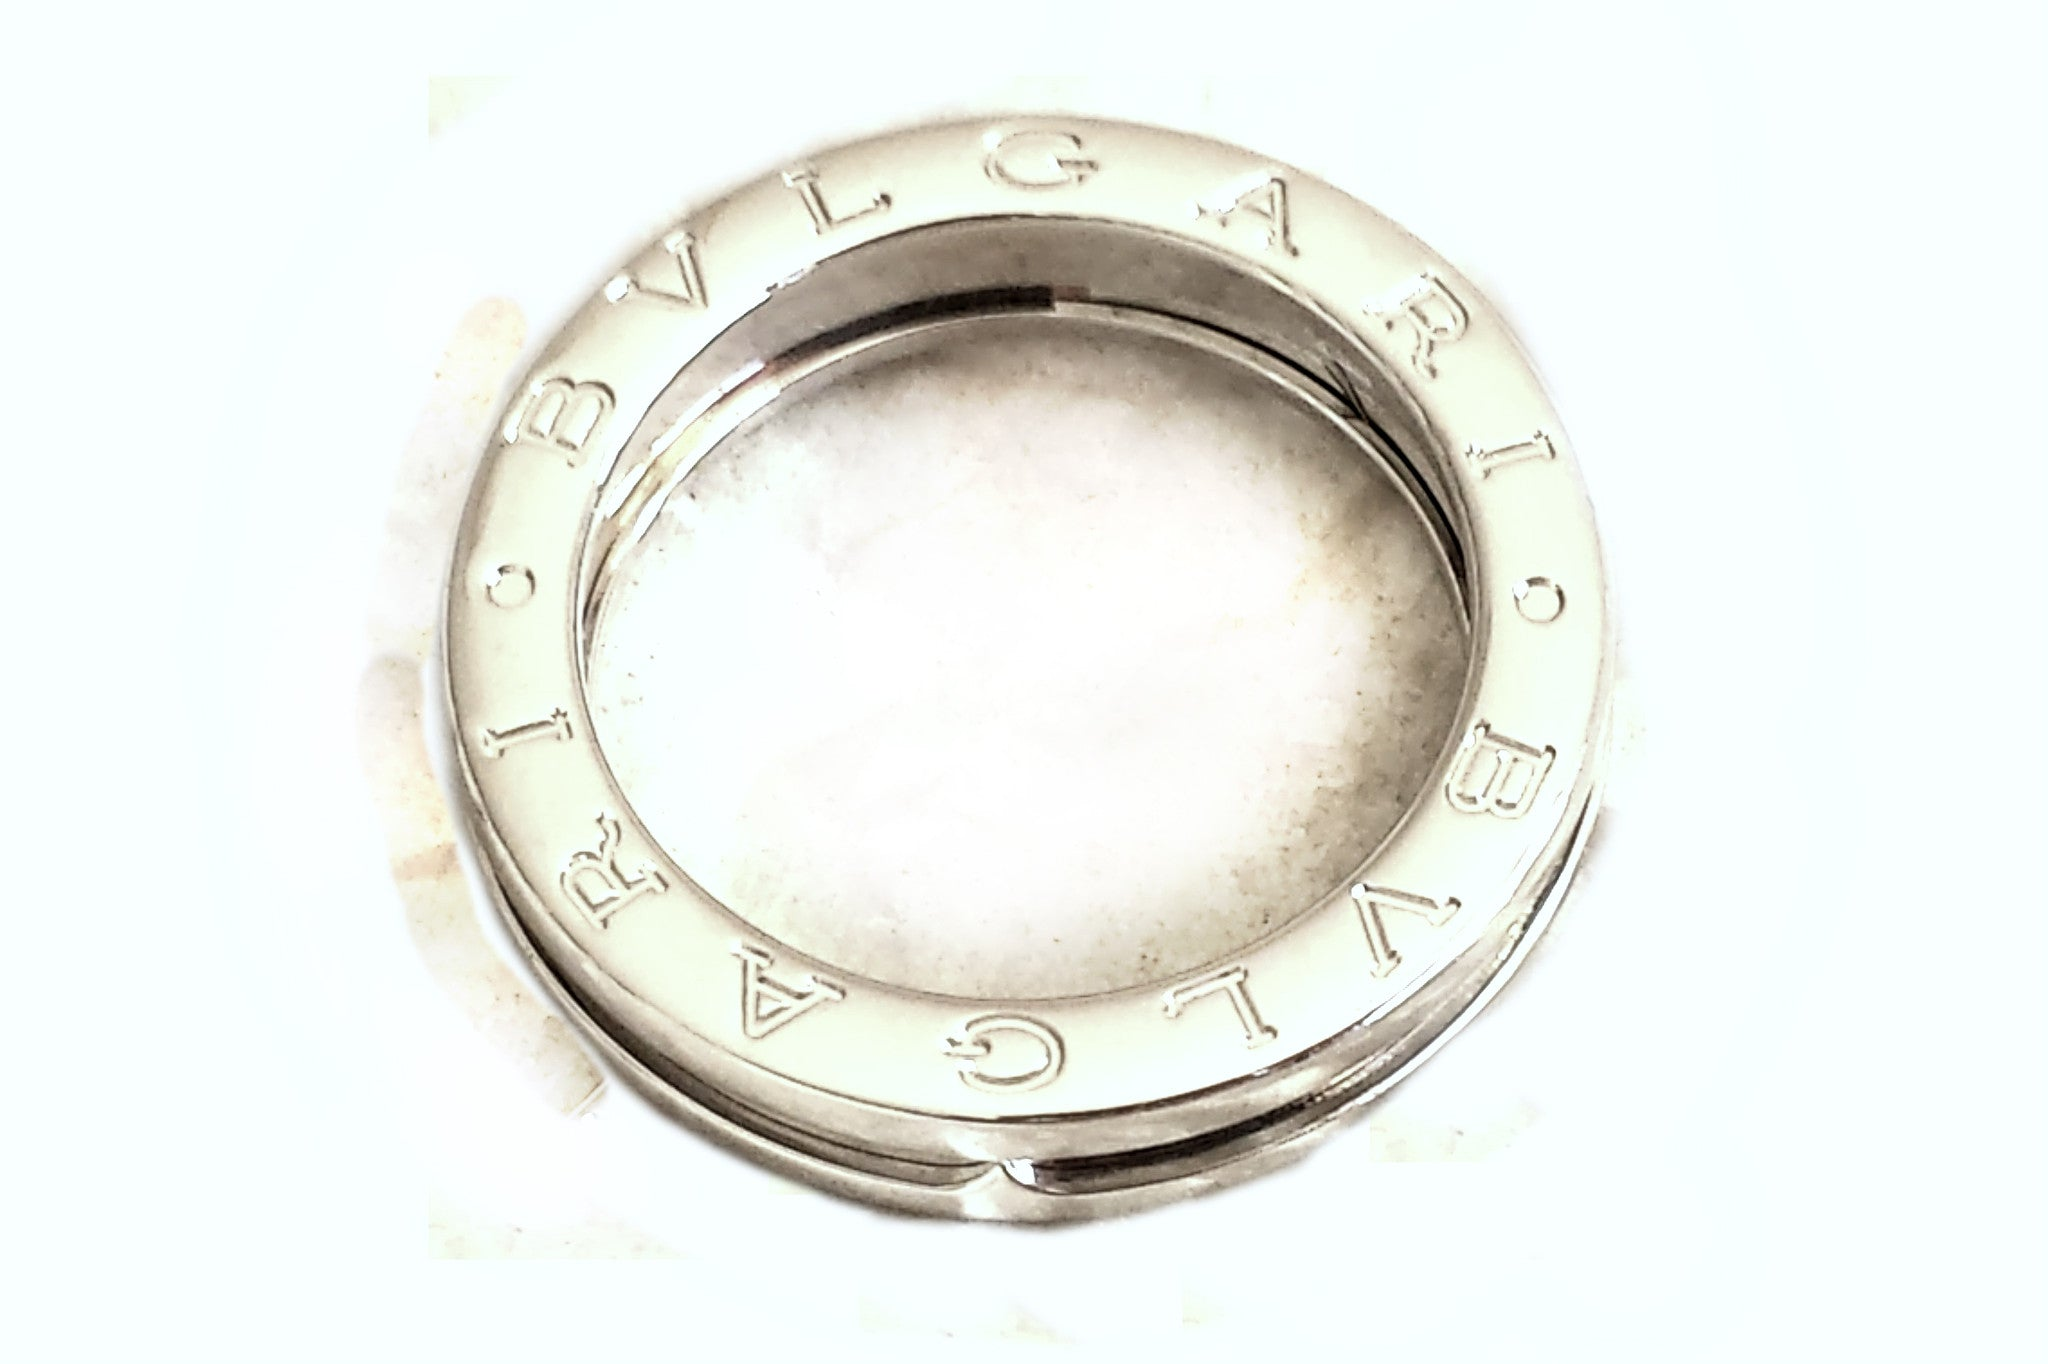 73eae14989cd6 Bulgari Bvlgari 1 Band BZero1 Ring in 18k White Gold, Size 54 (UK N ...